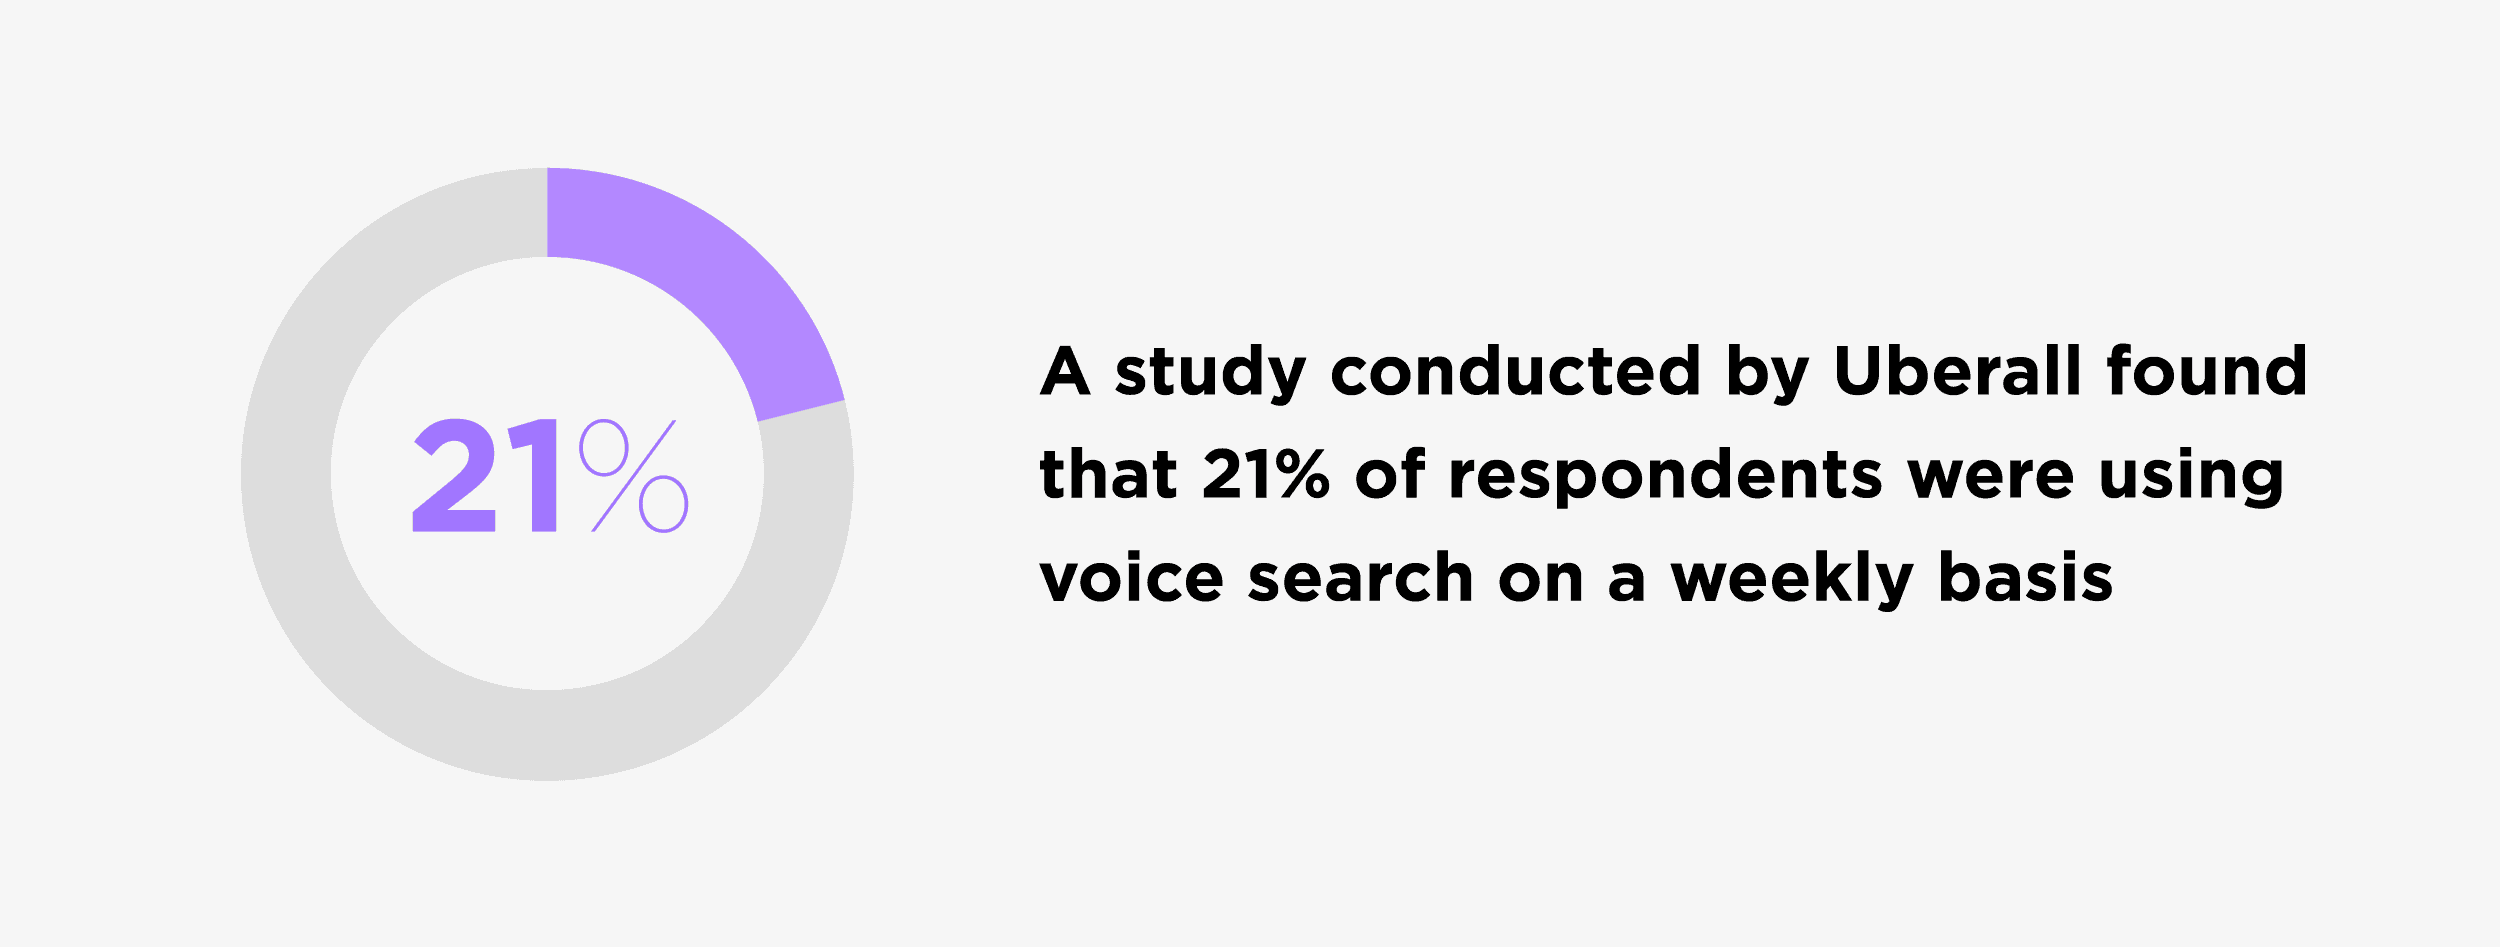 A study conducted by Uberall found that 21% of respondents were using voice search on a weekly basis